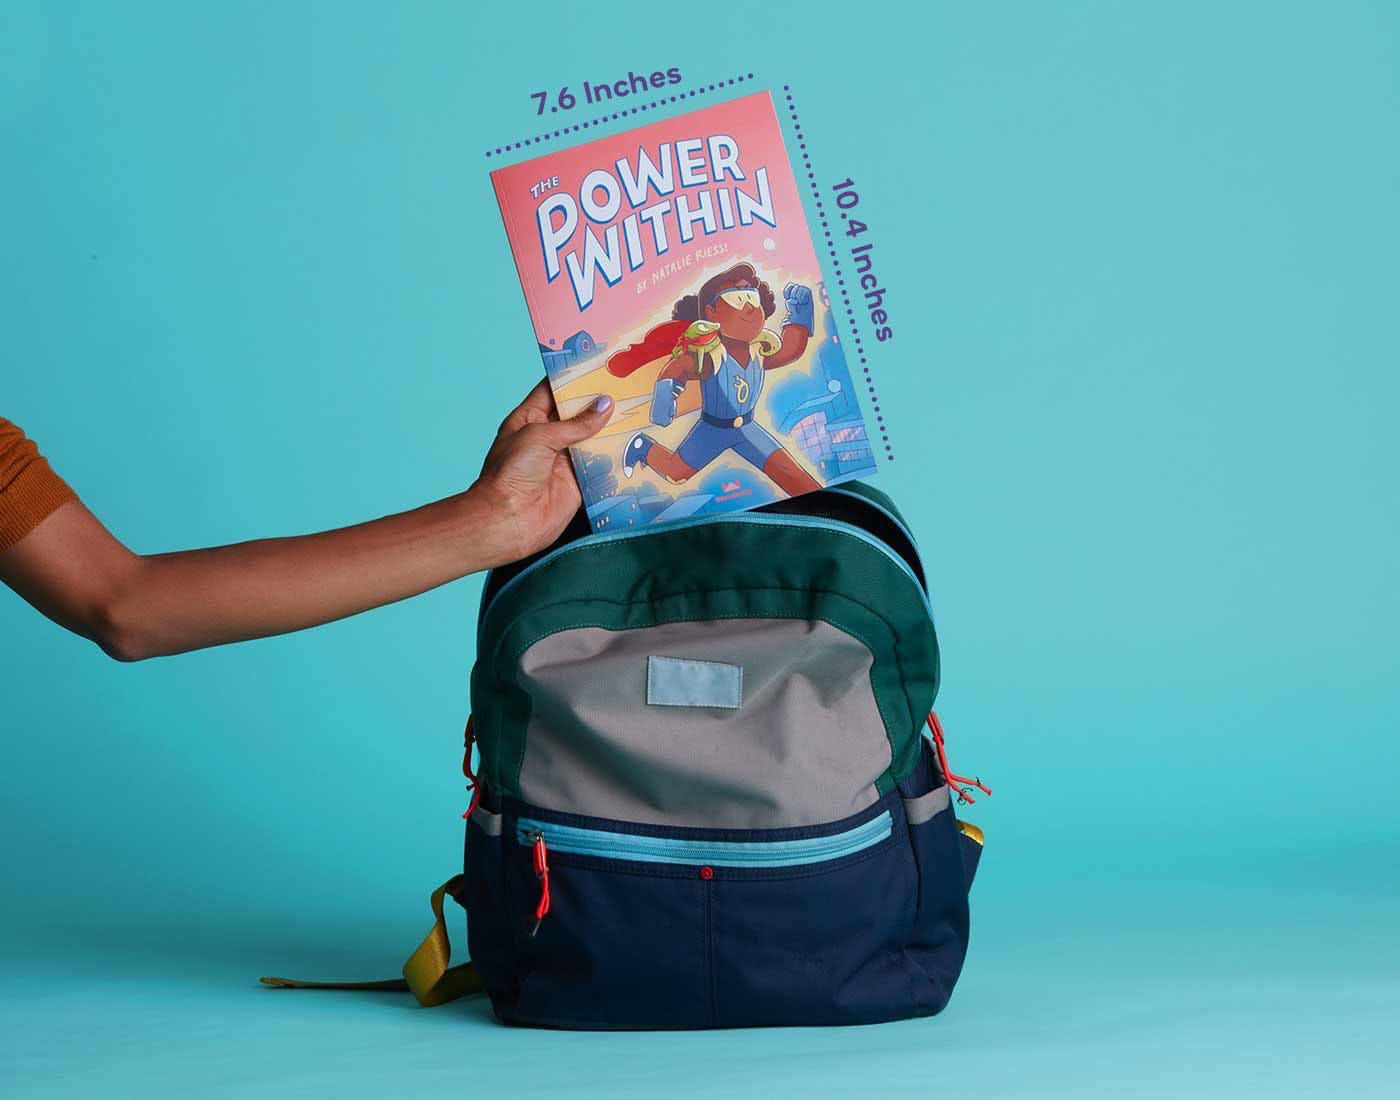 The Power Within personalized book size 7.6 inches by 10.4 inches being placed in backpack